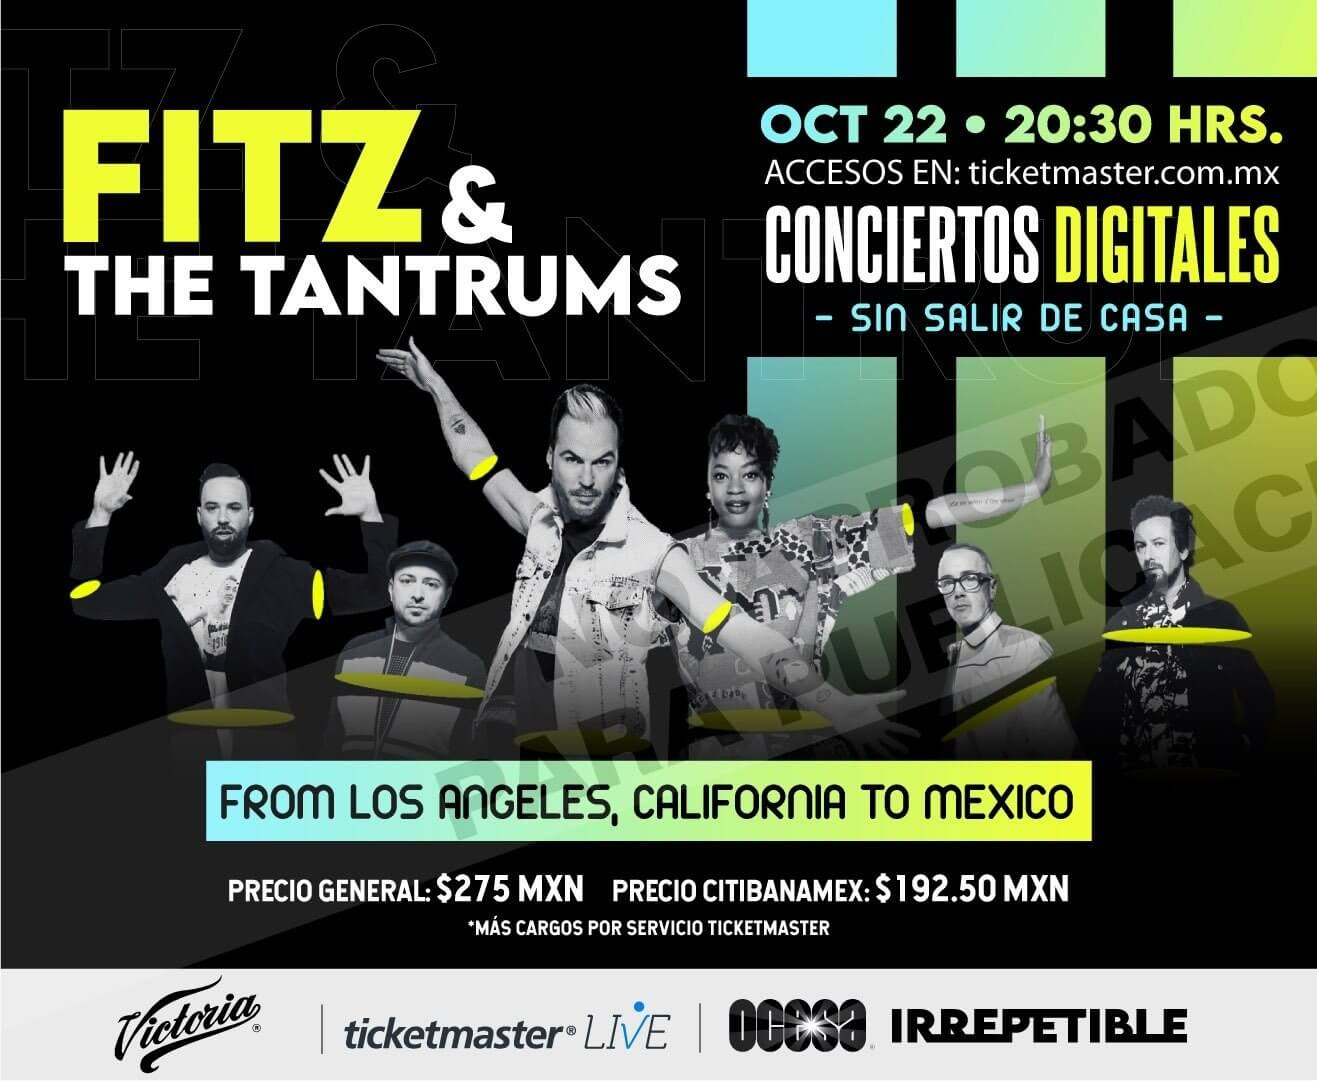 Fitz and the Tantrums IRREPETIBLE, 22 de octubre por Ticketmaster Live